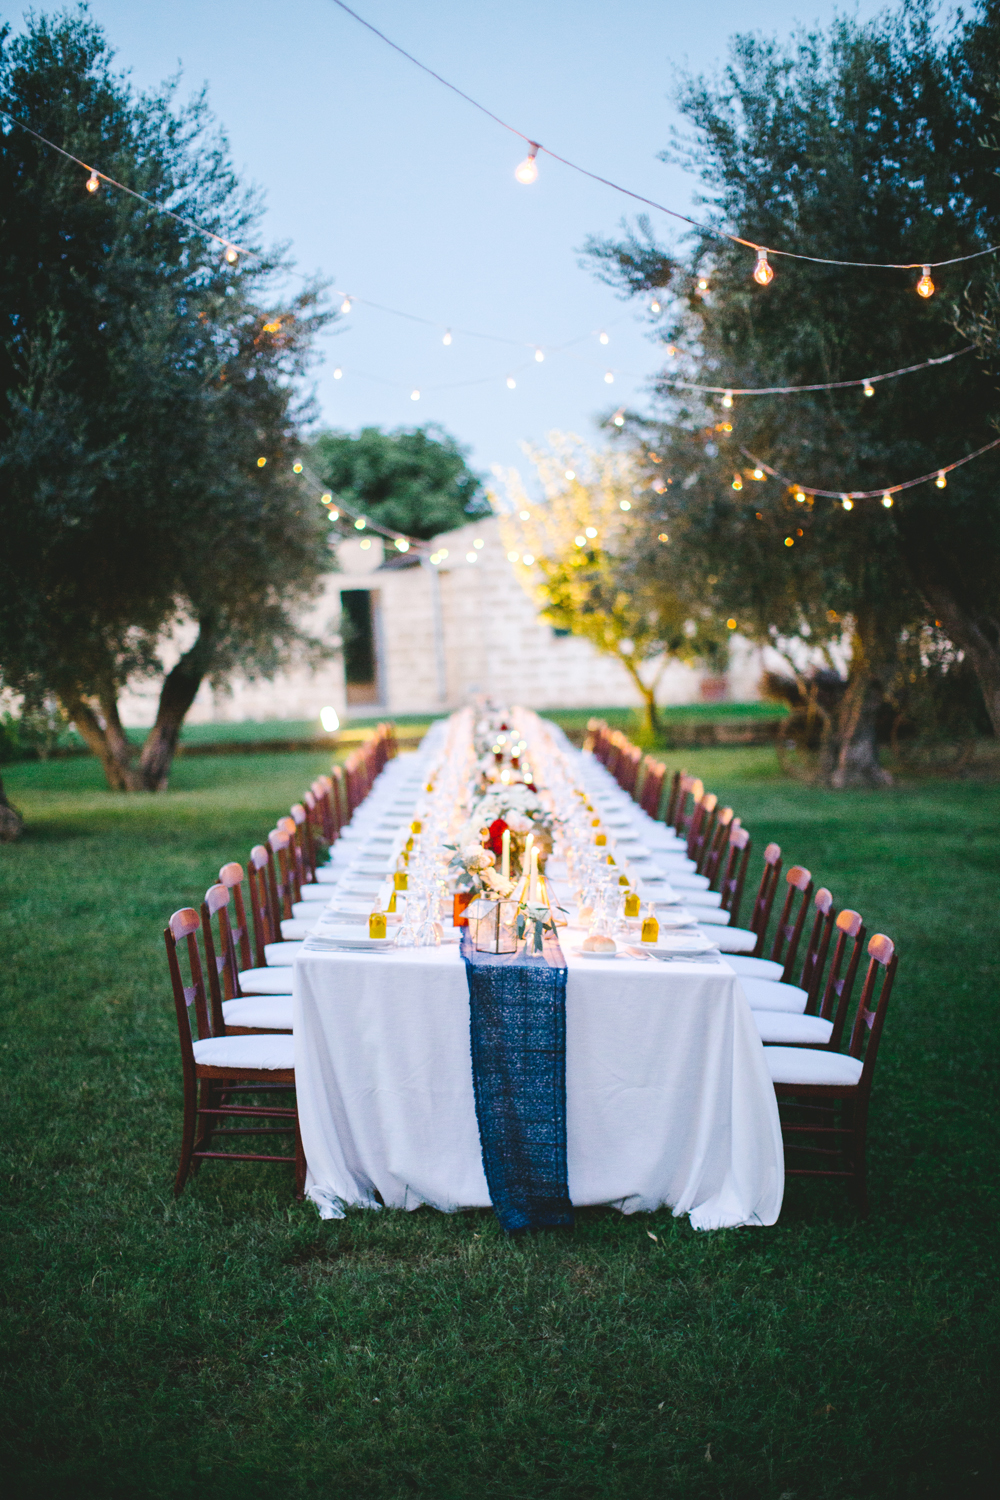 Les Amis Photo_Destination Wedding Photographer_Wedding in Puglia_BARMIC_15_616.jpg